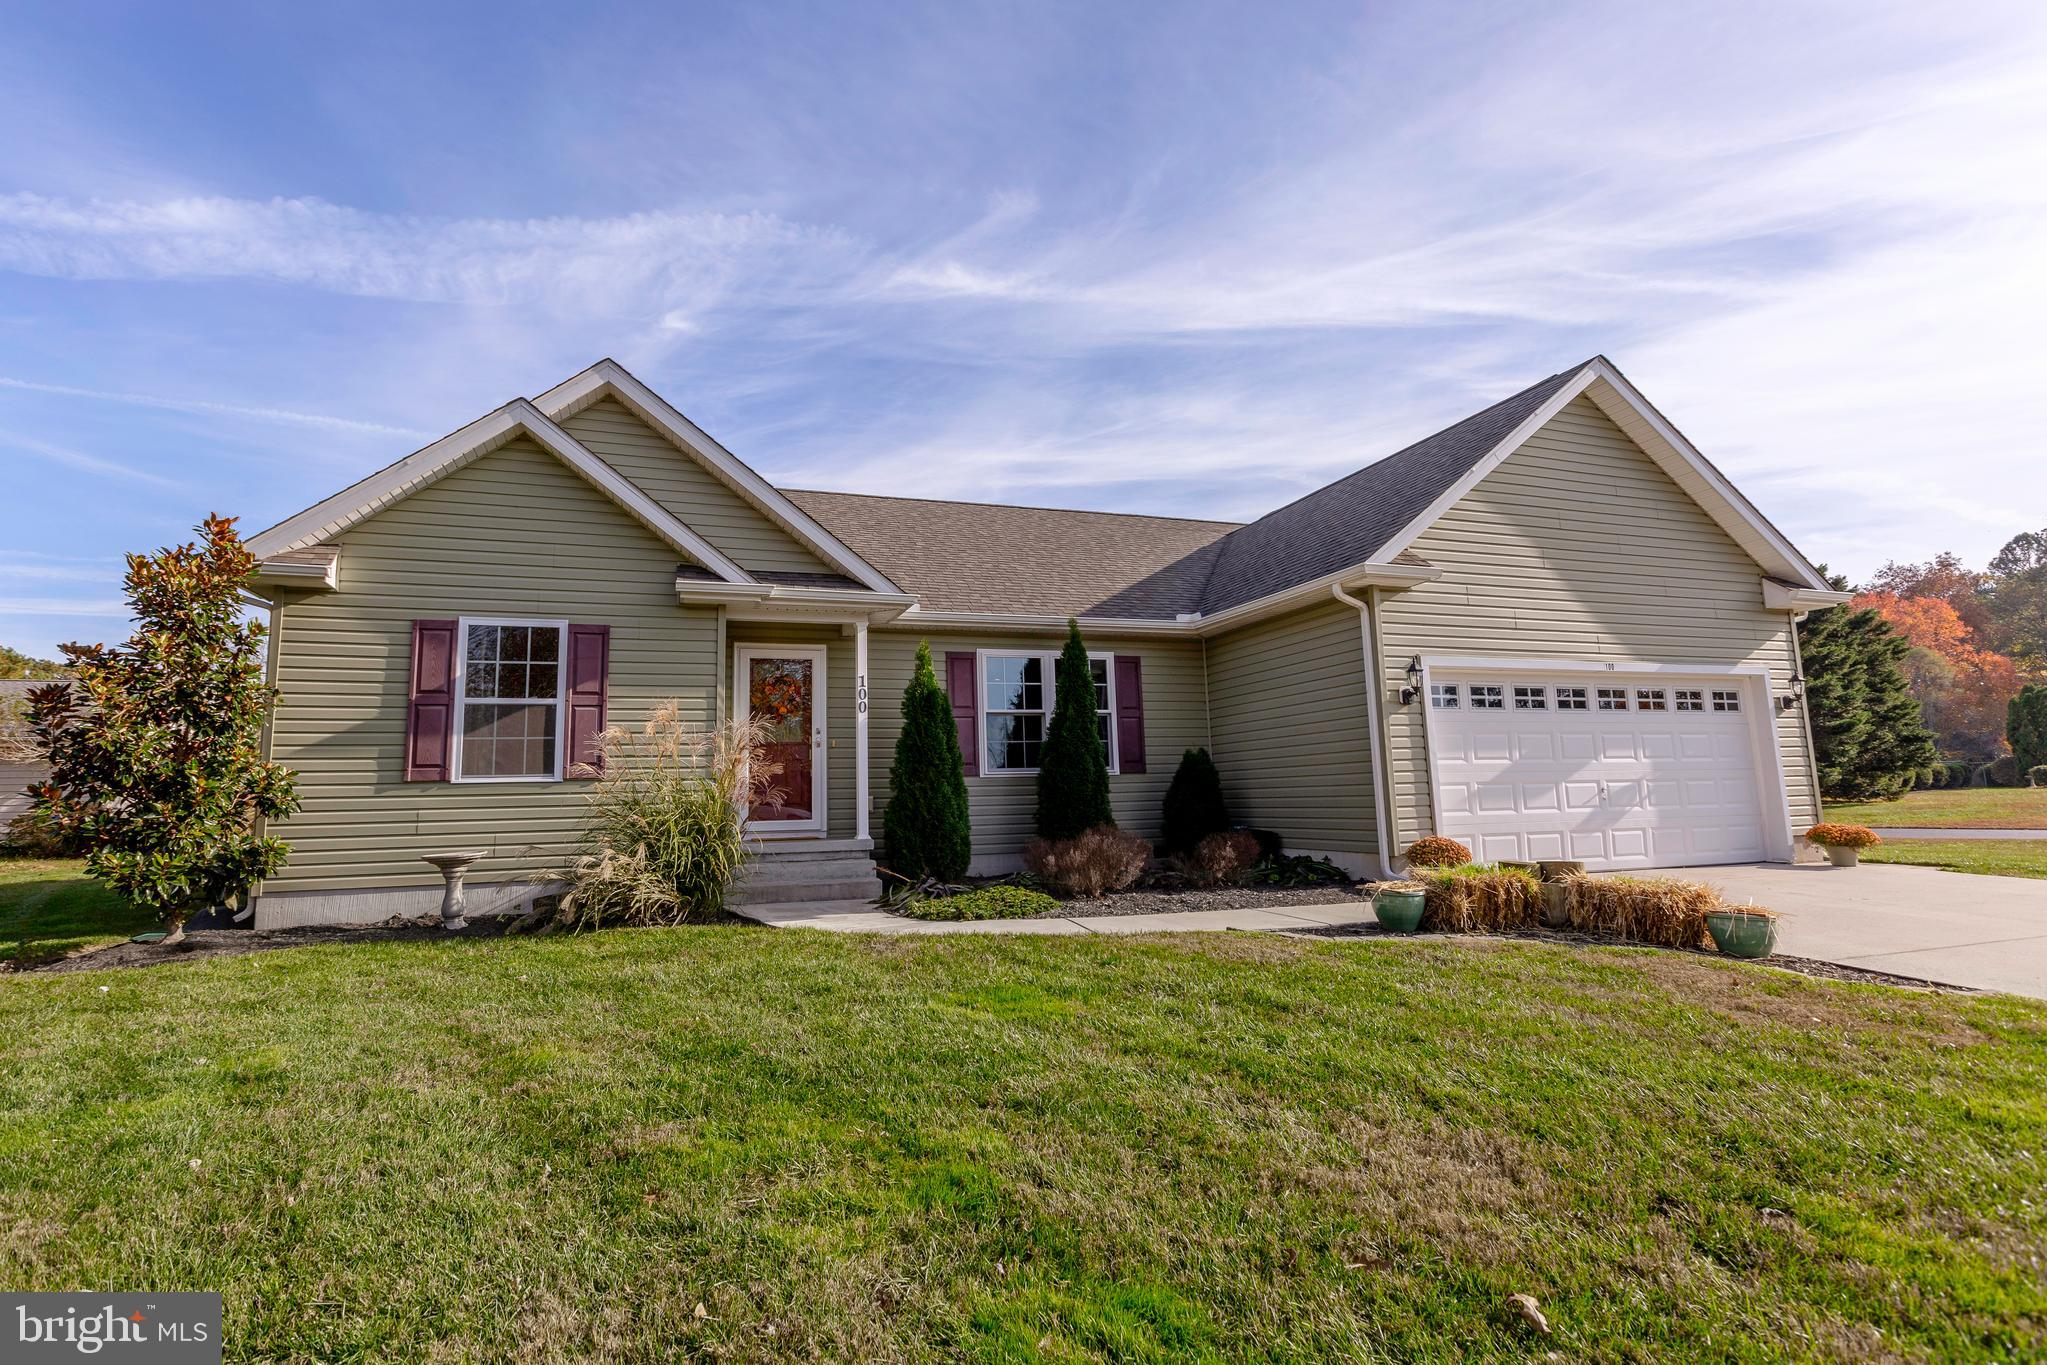 This 3BD, 2BA pristinely-kept house is move-in ready. The open-concept living area boasts hardwood f